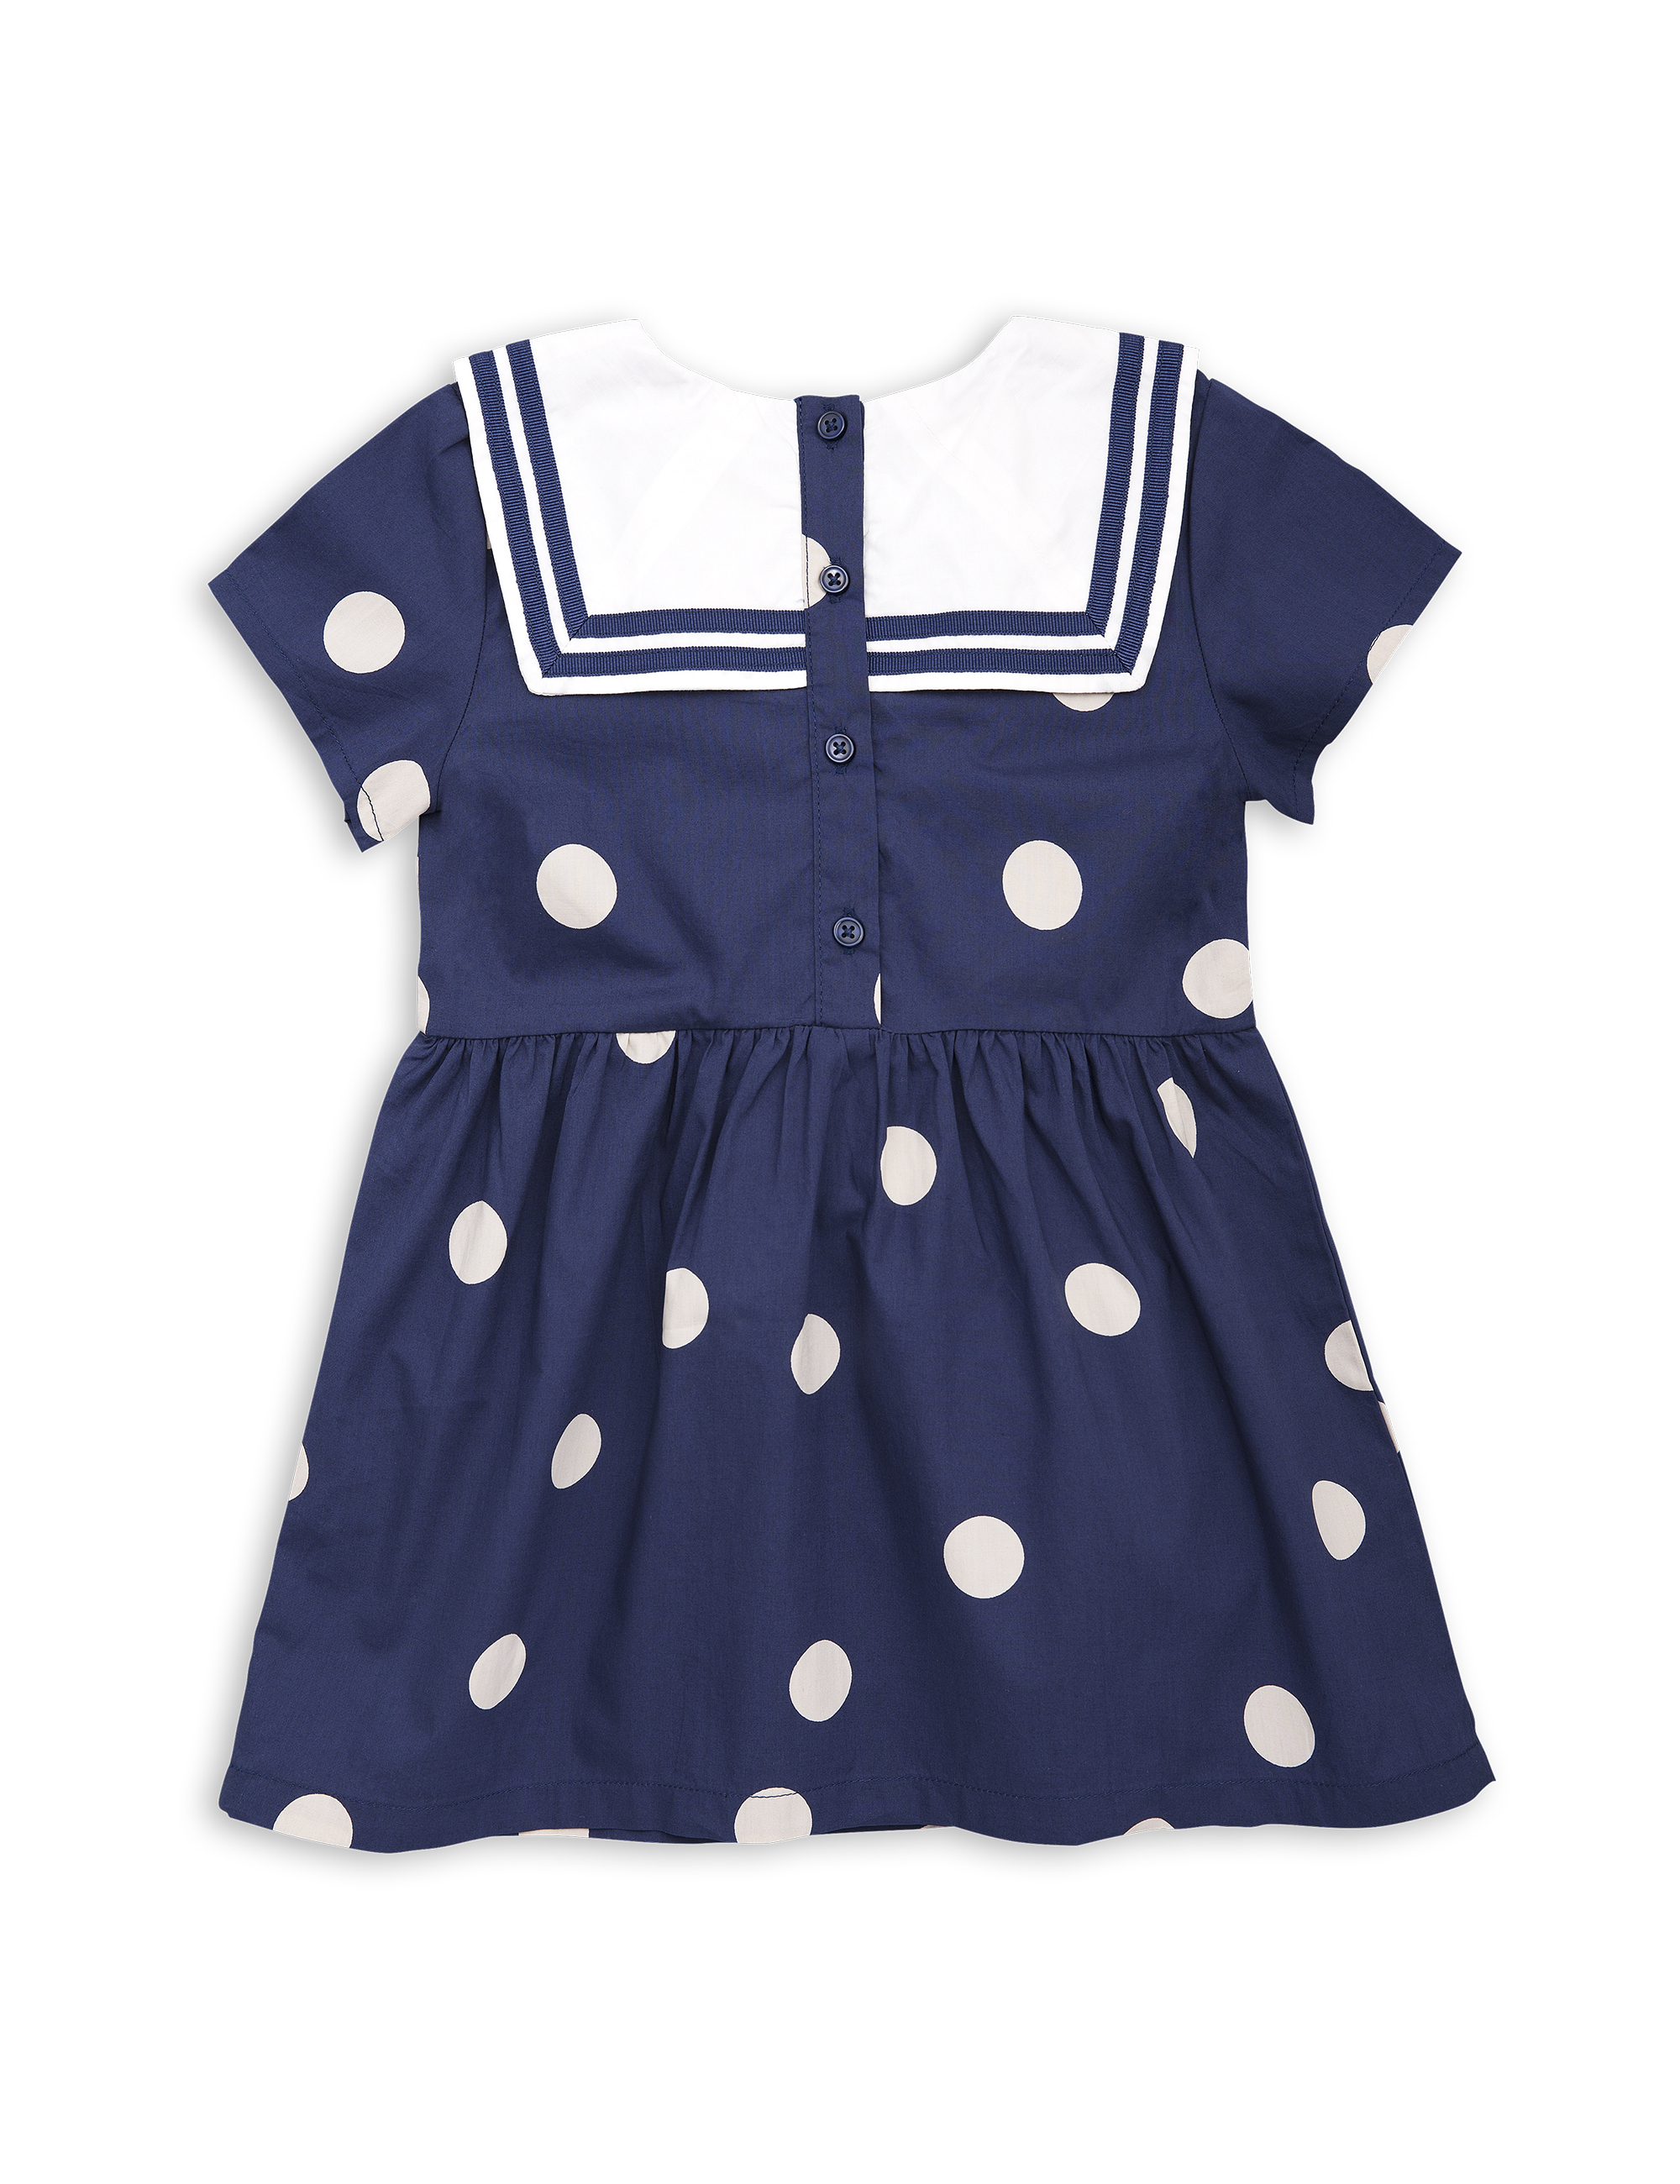 b4b0a99f170 DOT WOVEN SAILOR DRESS NAVY